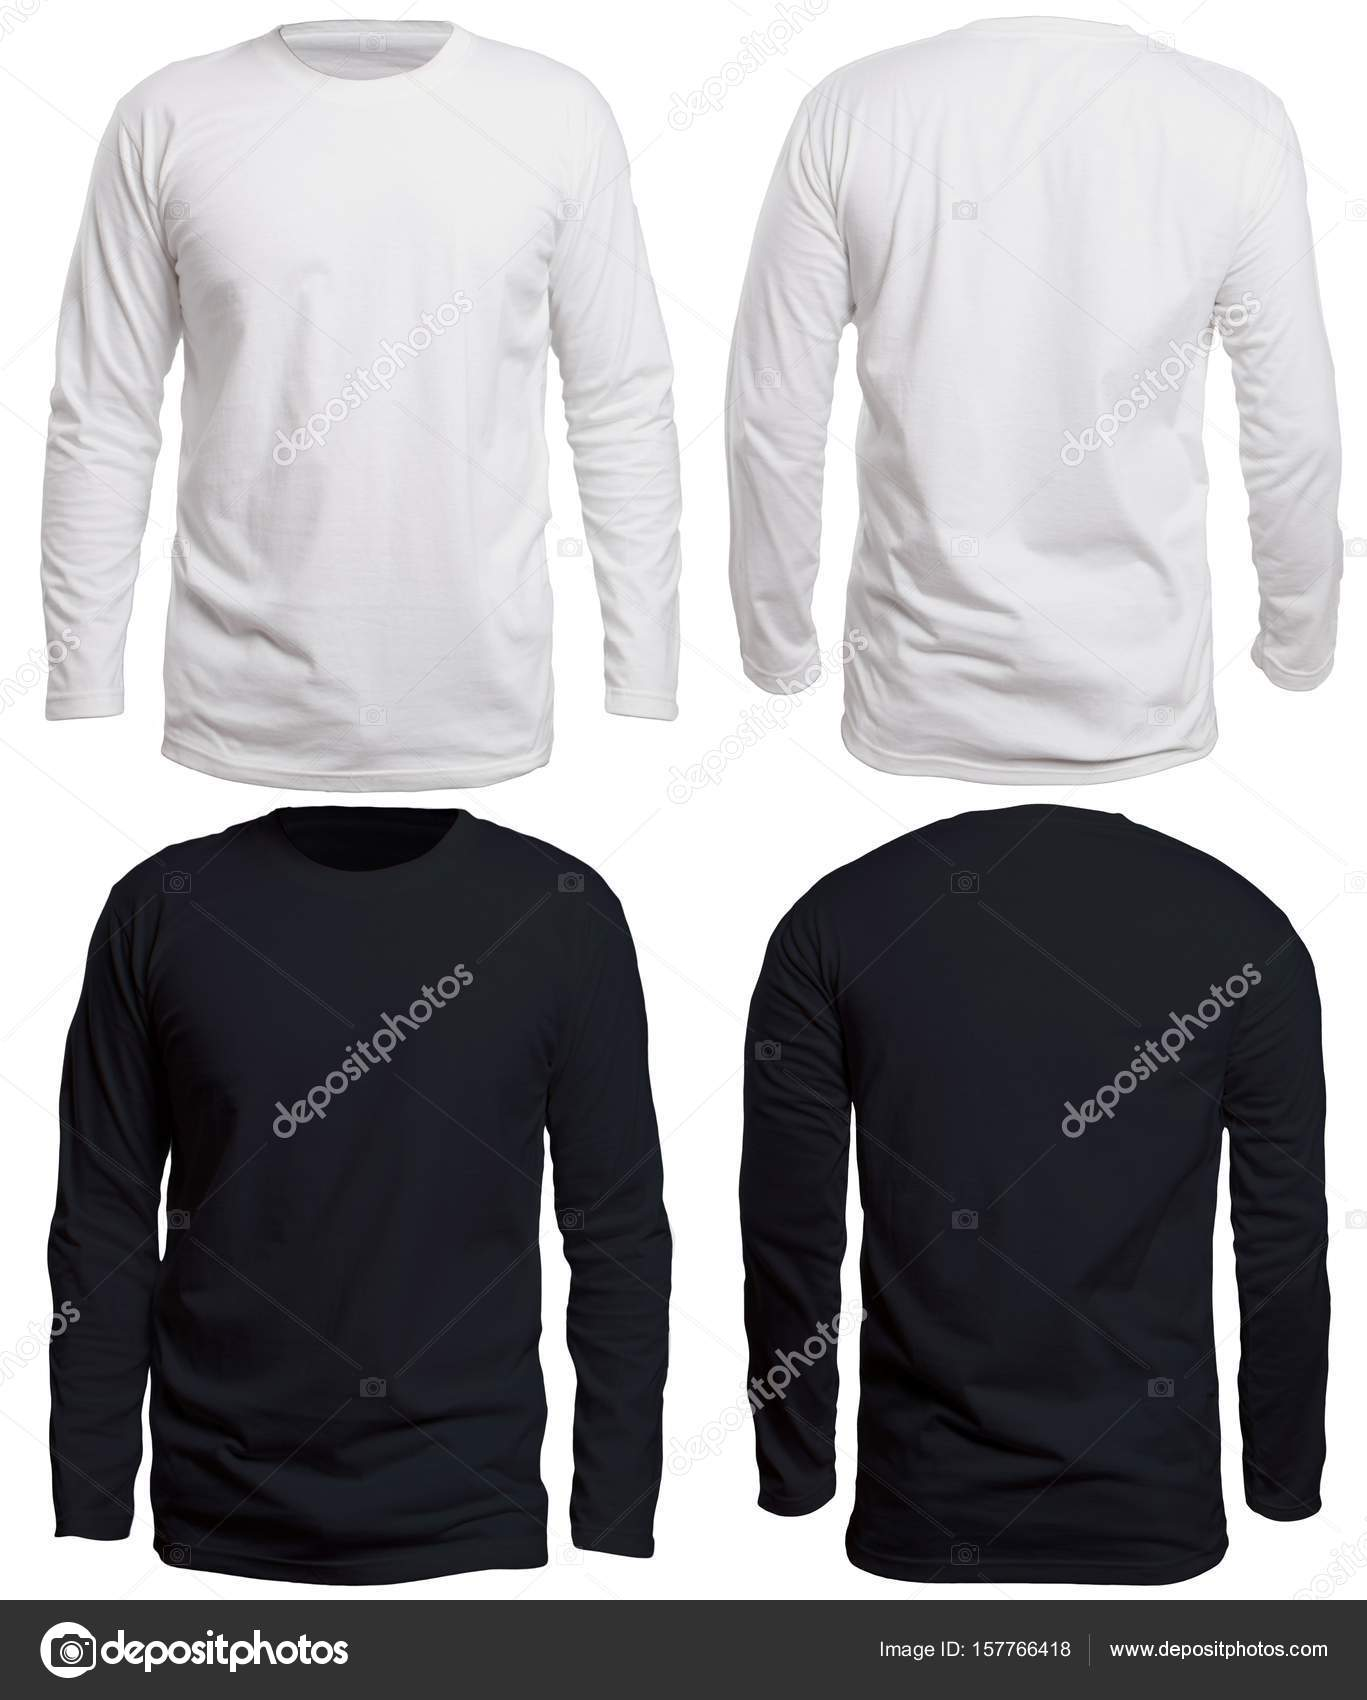 Blank Long Sleve Shirt Mock Up Template Front And Back View Isolated On White Plain Black T Mockup Sleeved Tee Design Presentation